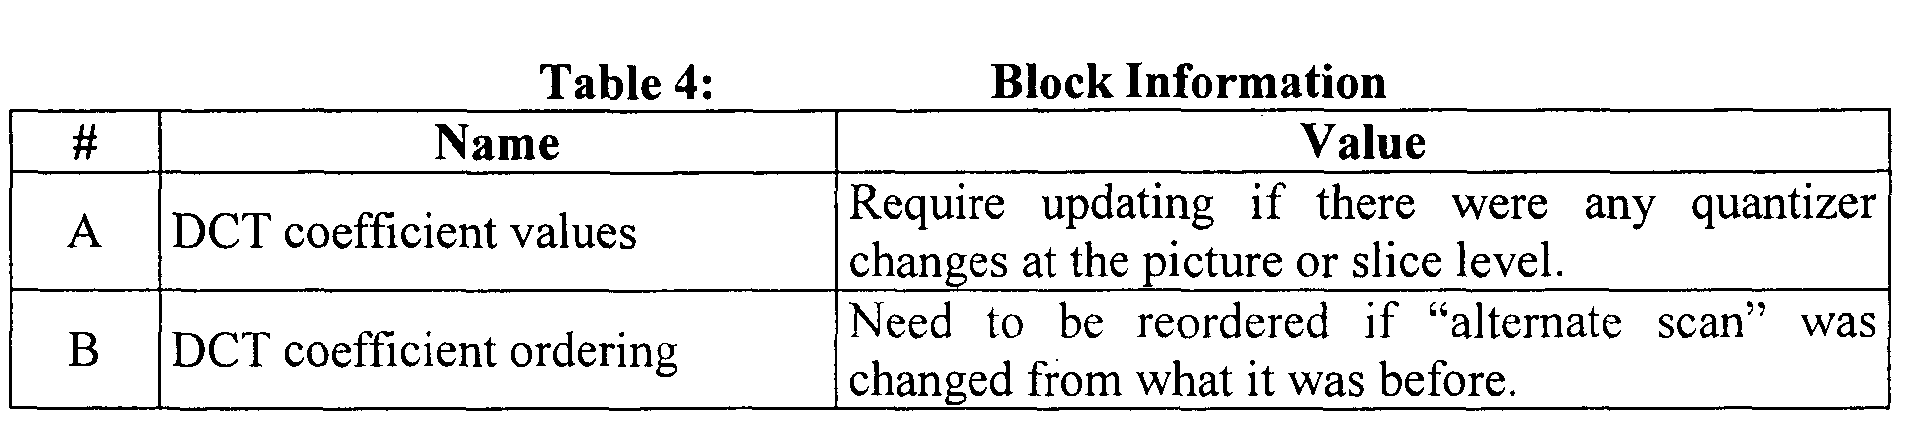 WO2008088772A9 - Mpeg objects and systems and methods for using mpeg